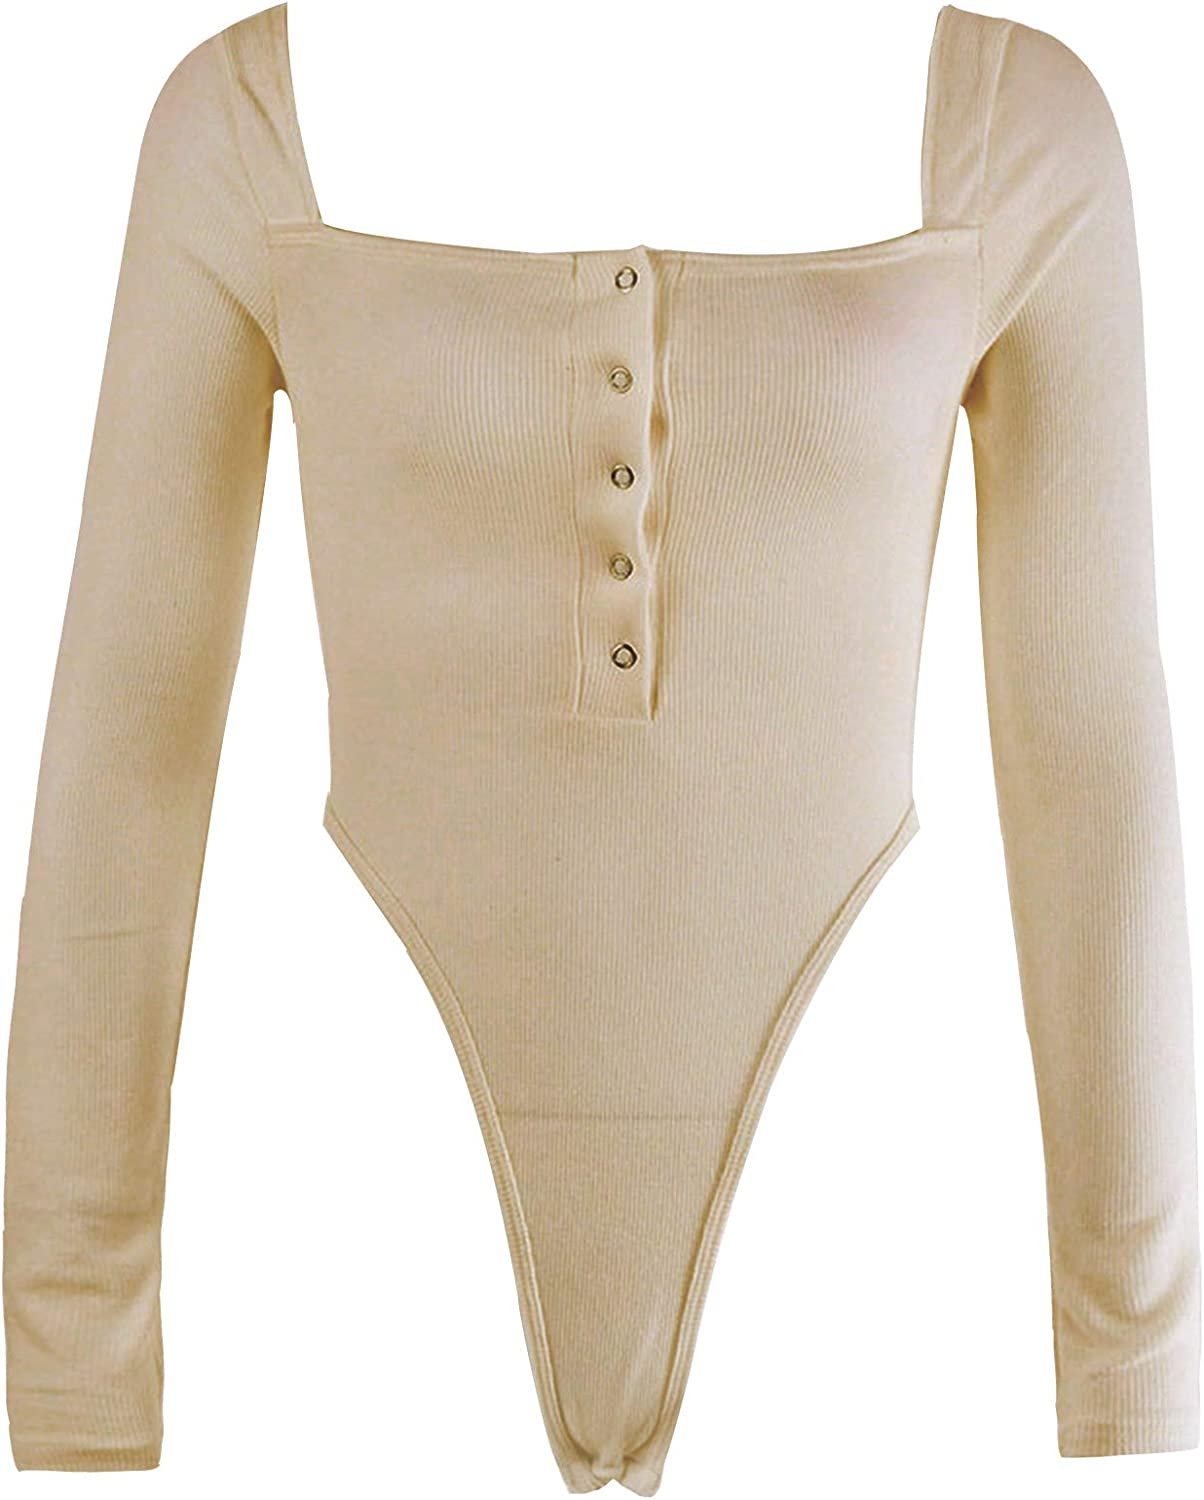 dPois Women's Sexy Pure Color One Word Collar Bodysuit Long Sleeve Crochet Slim Fit Sports Leotard Shirts